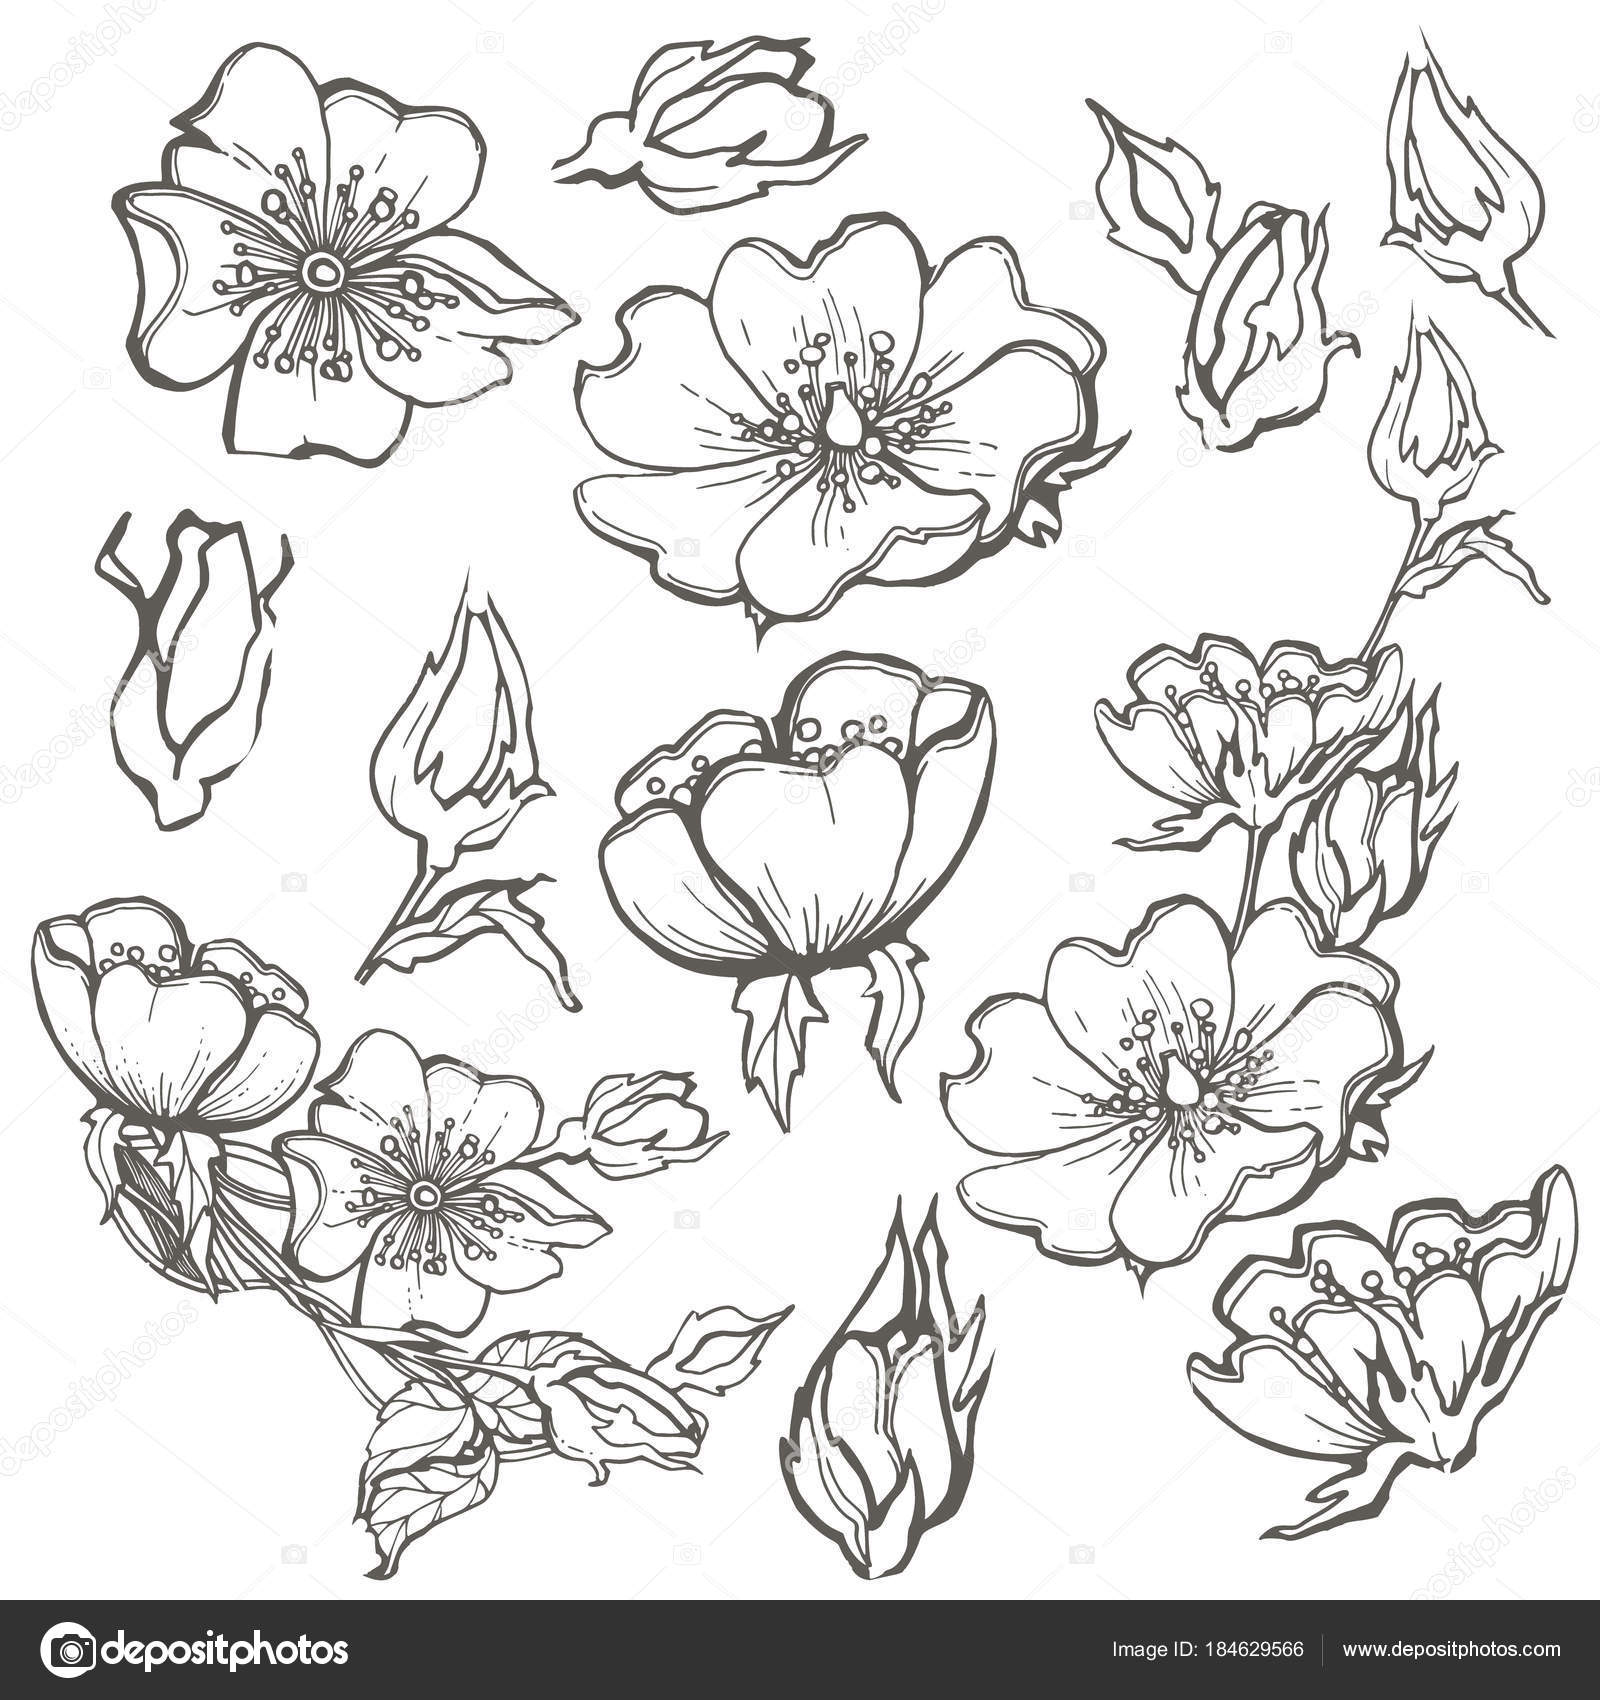 Wild dog rose set flowers contour ink adult coloring page with buds ...